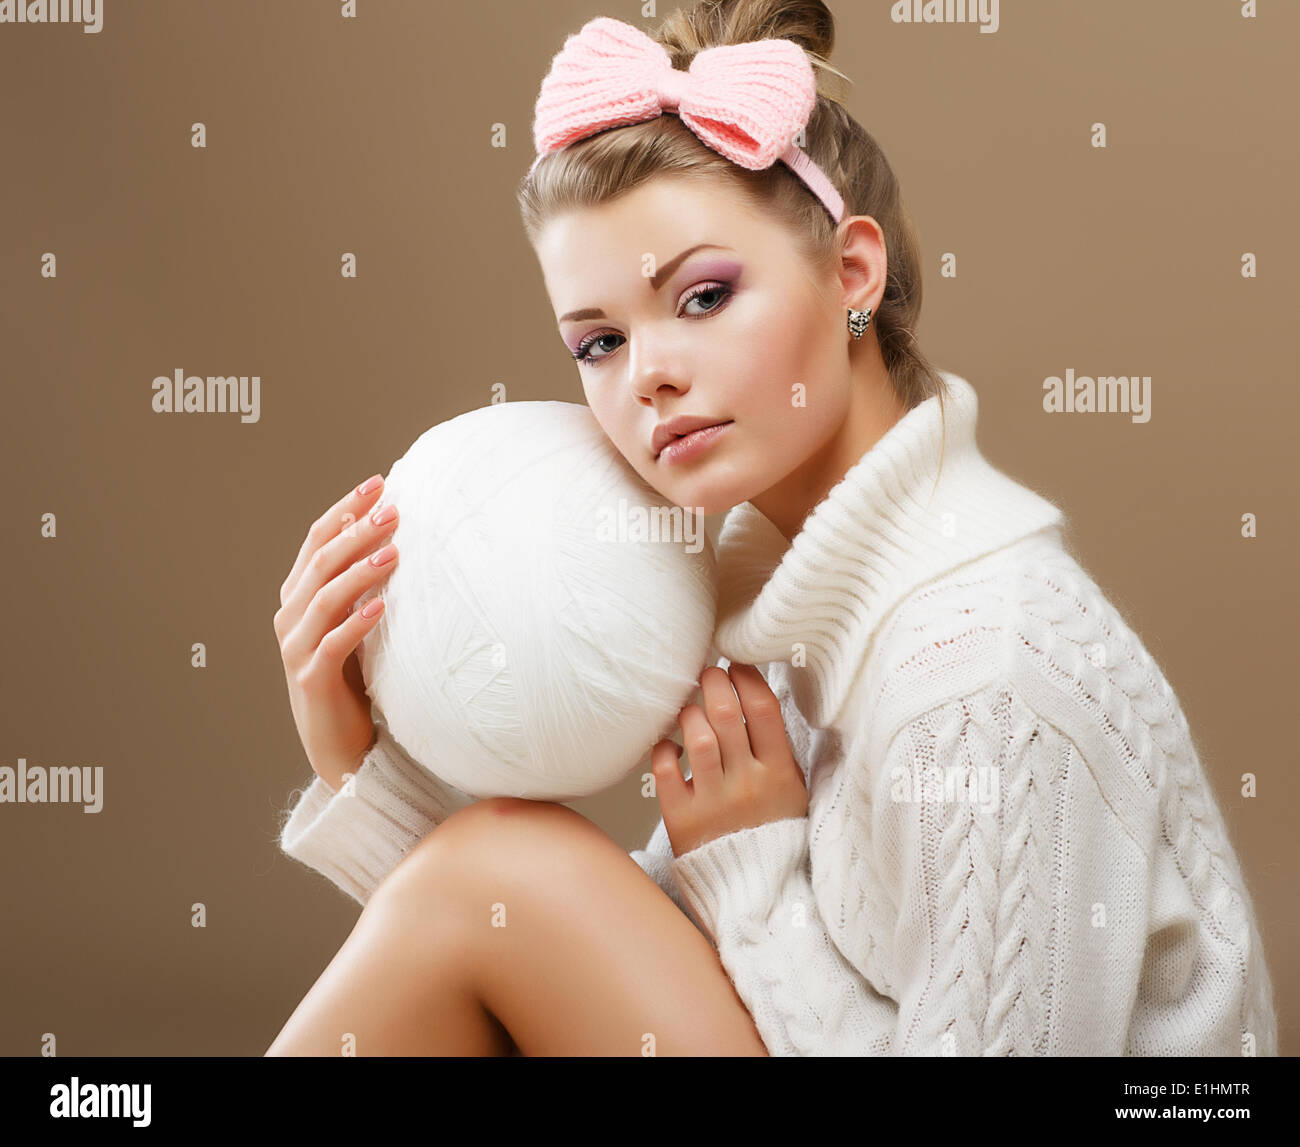 Hosiery. Beautiful Teen in Handmade Woven Sweater with White Ball of Yarn - Stock Image